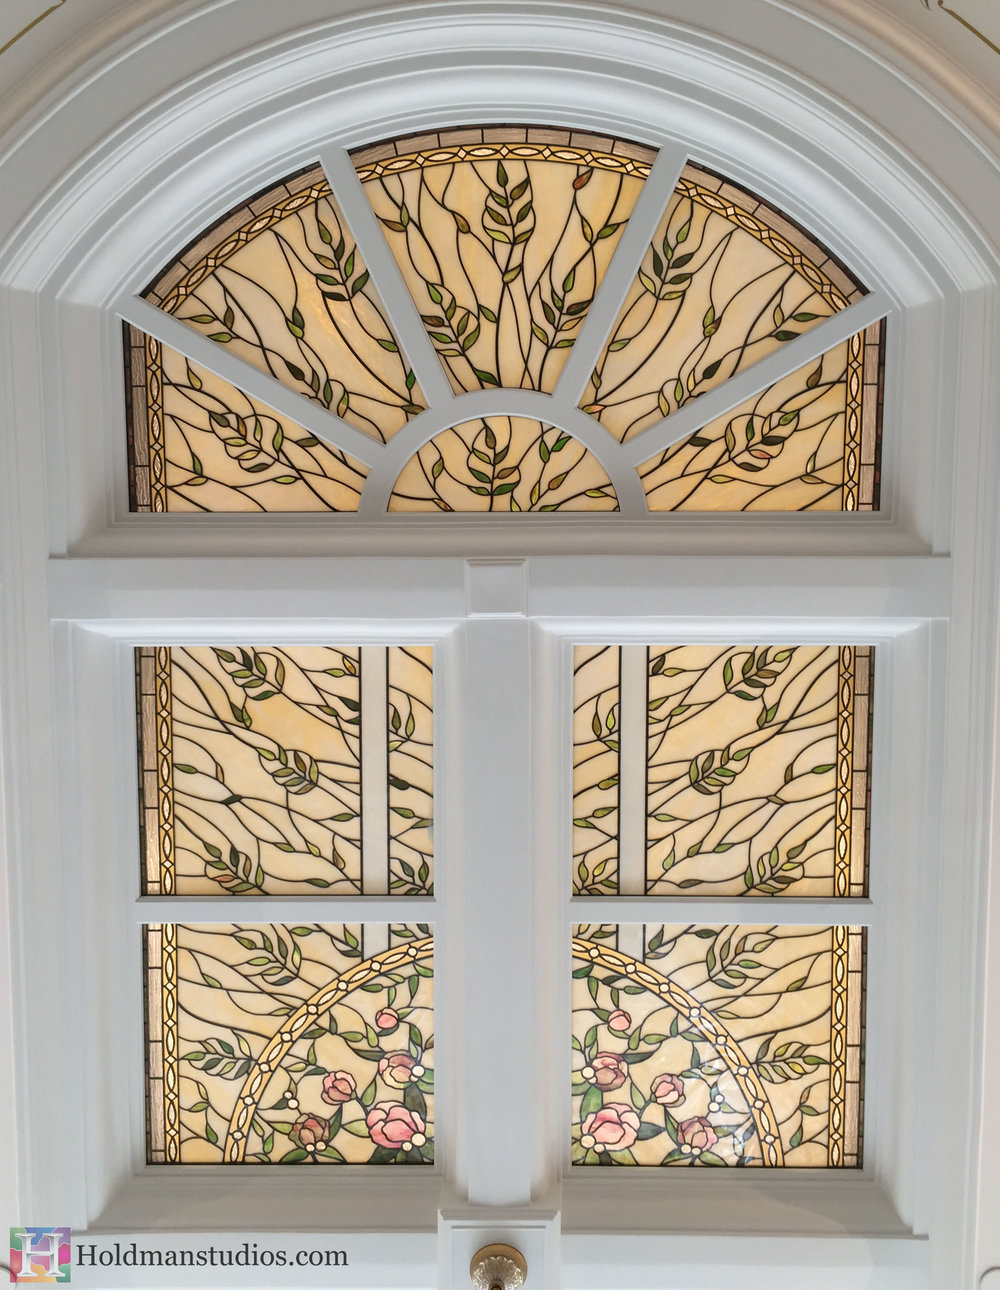 Holdman_Studios_Stained_Art_Glass_Payson_Utah_Temple_Apple_Blossom_Leaves_Skylight_Windows.jpg